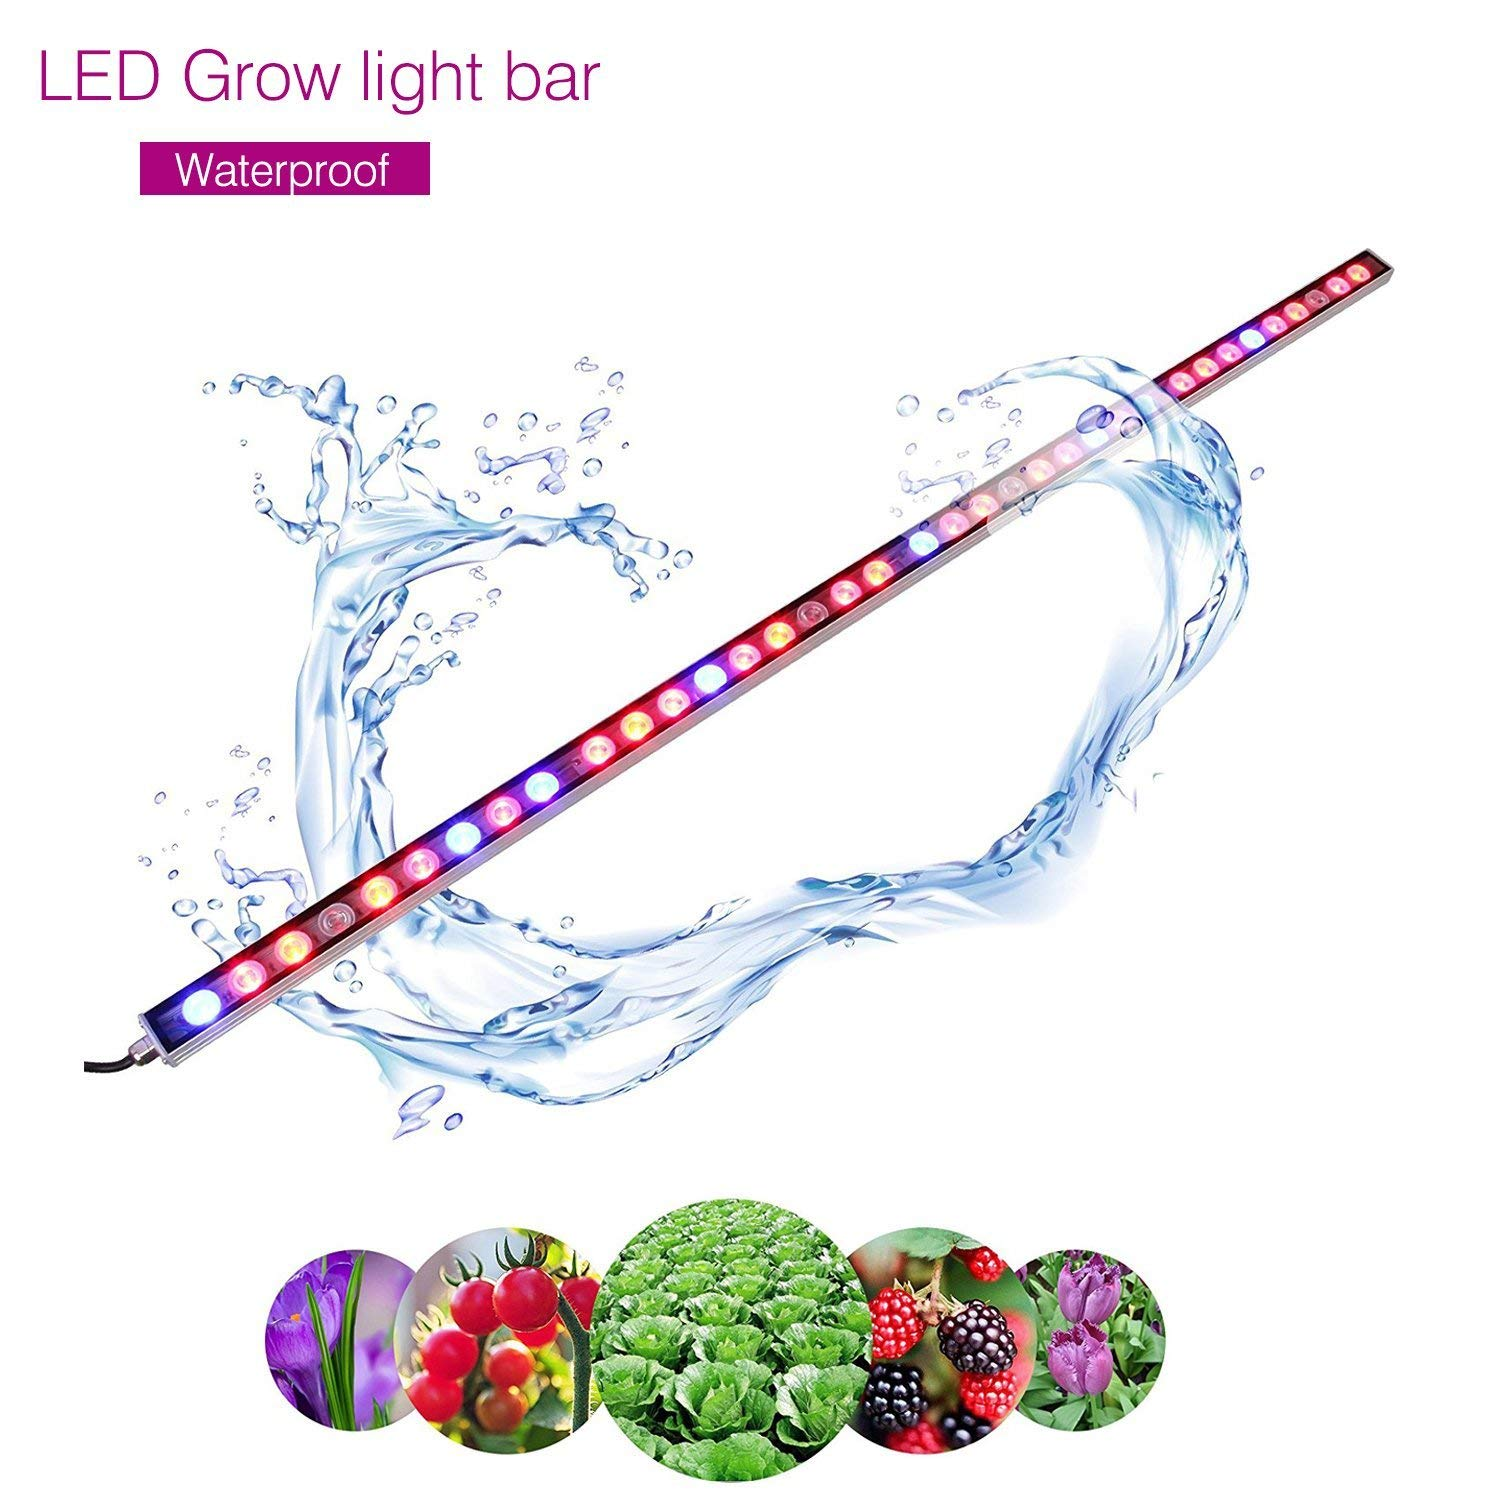 LED Grow Light, 108W Waterproof growing light bar with UV/IR/Red/Blue Spectrum for Garden Greenhouse Hydroponic Indoor Plants Growing by Lightimetunnel